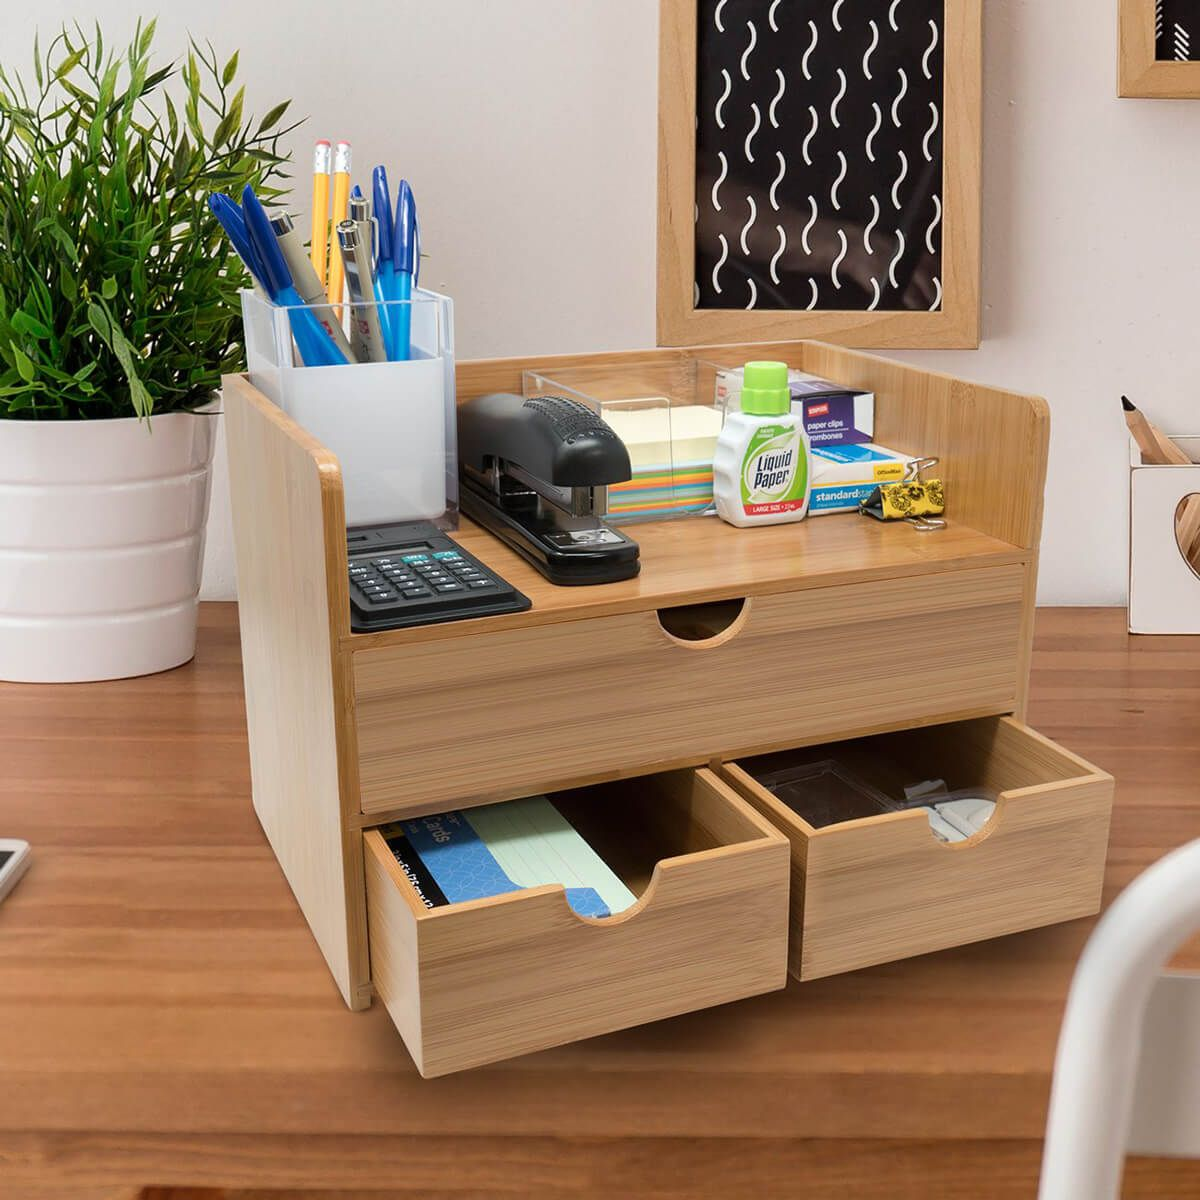 30 Imaginative Office Desk And Storage Ideas To Keep Your Work Space Productive Desk Organization Desk Storage Shelf Organization